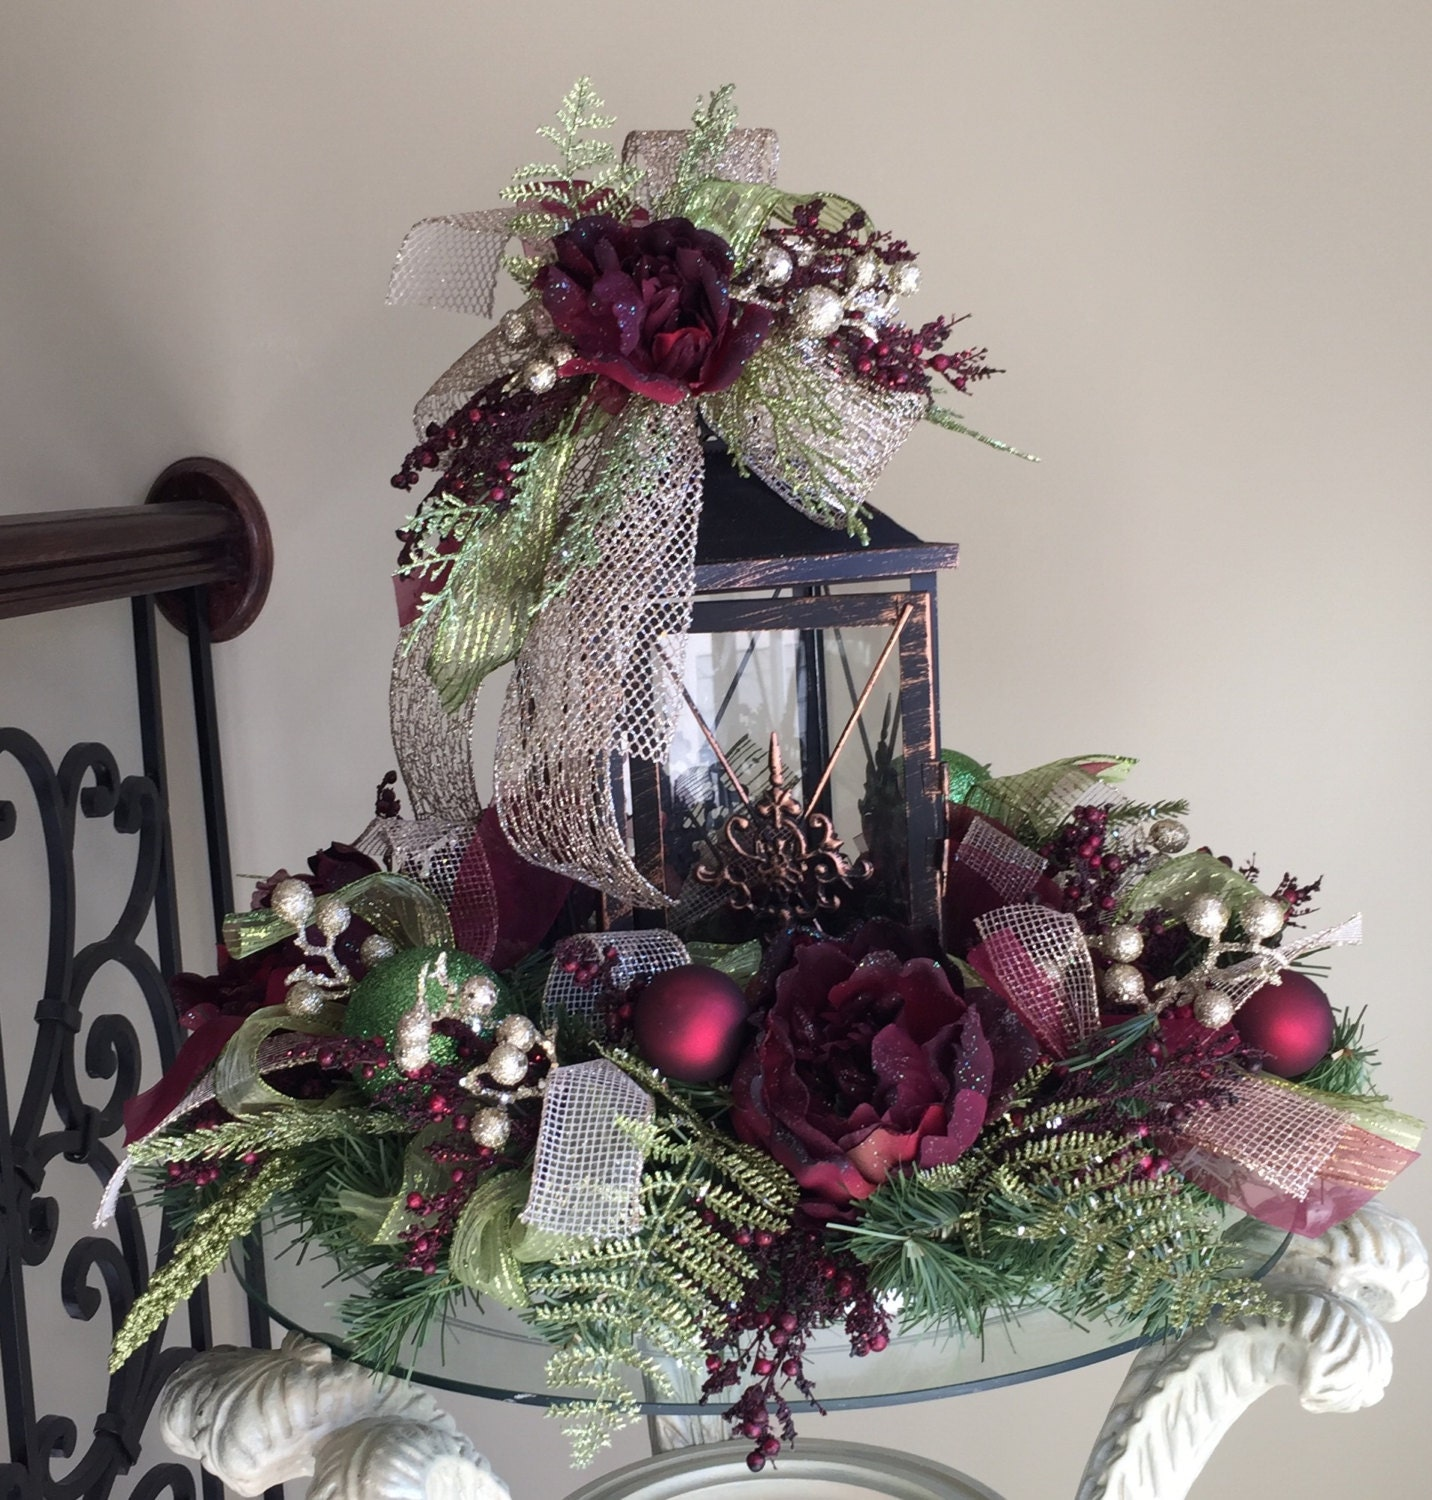 Christmas holiday lantern and wreath by theenchantedorchid